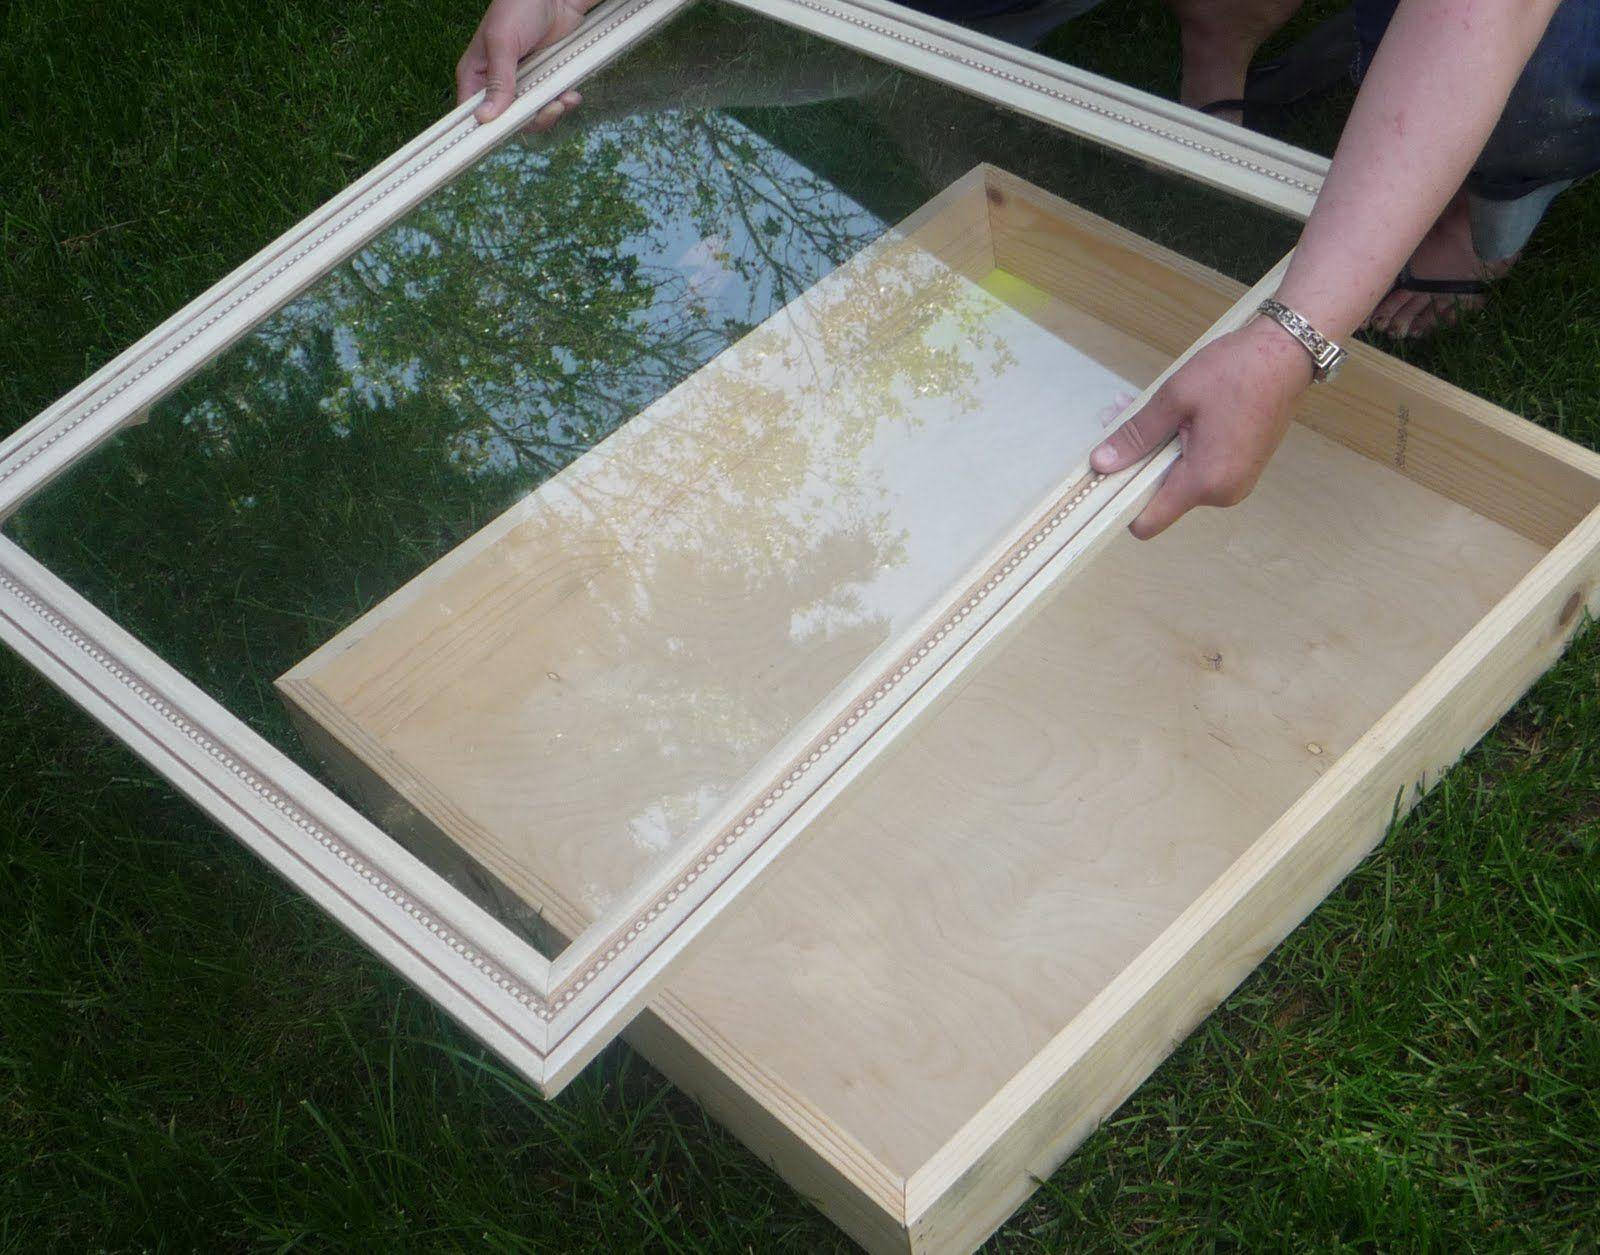 DIY Shadow Box...hmm can I get shatter proof glass and